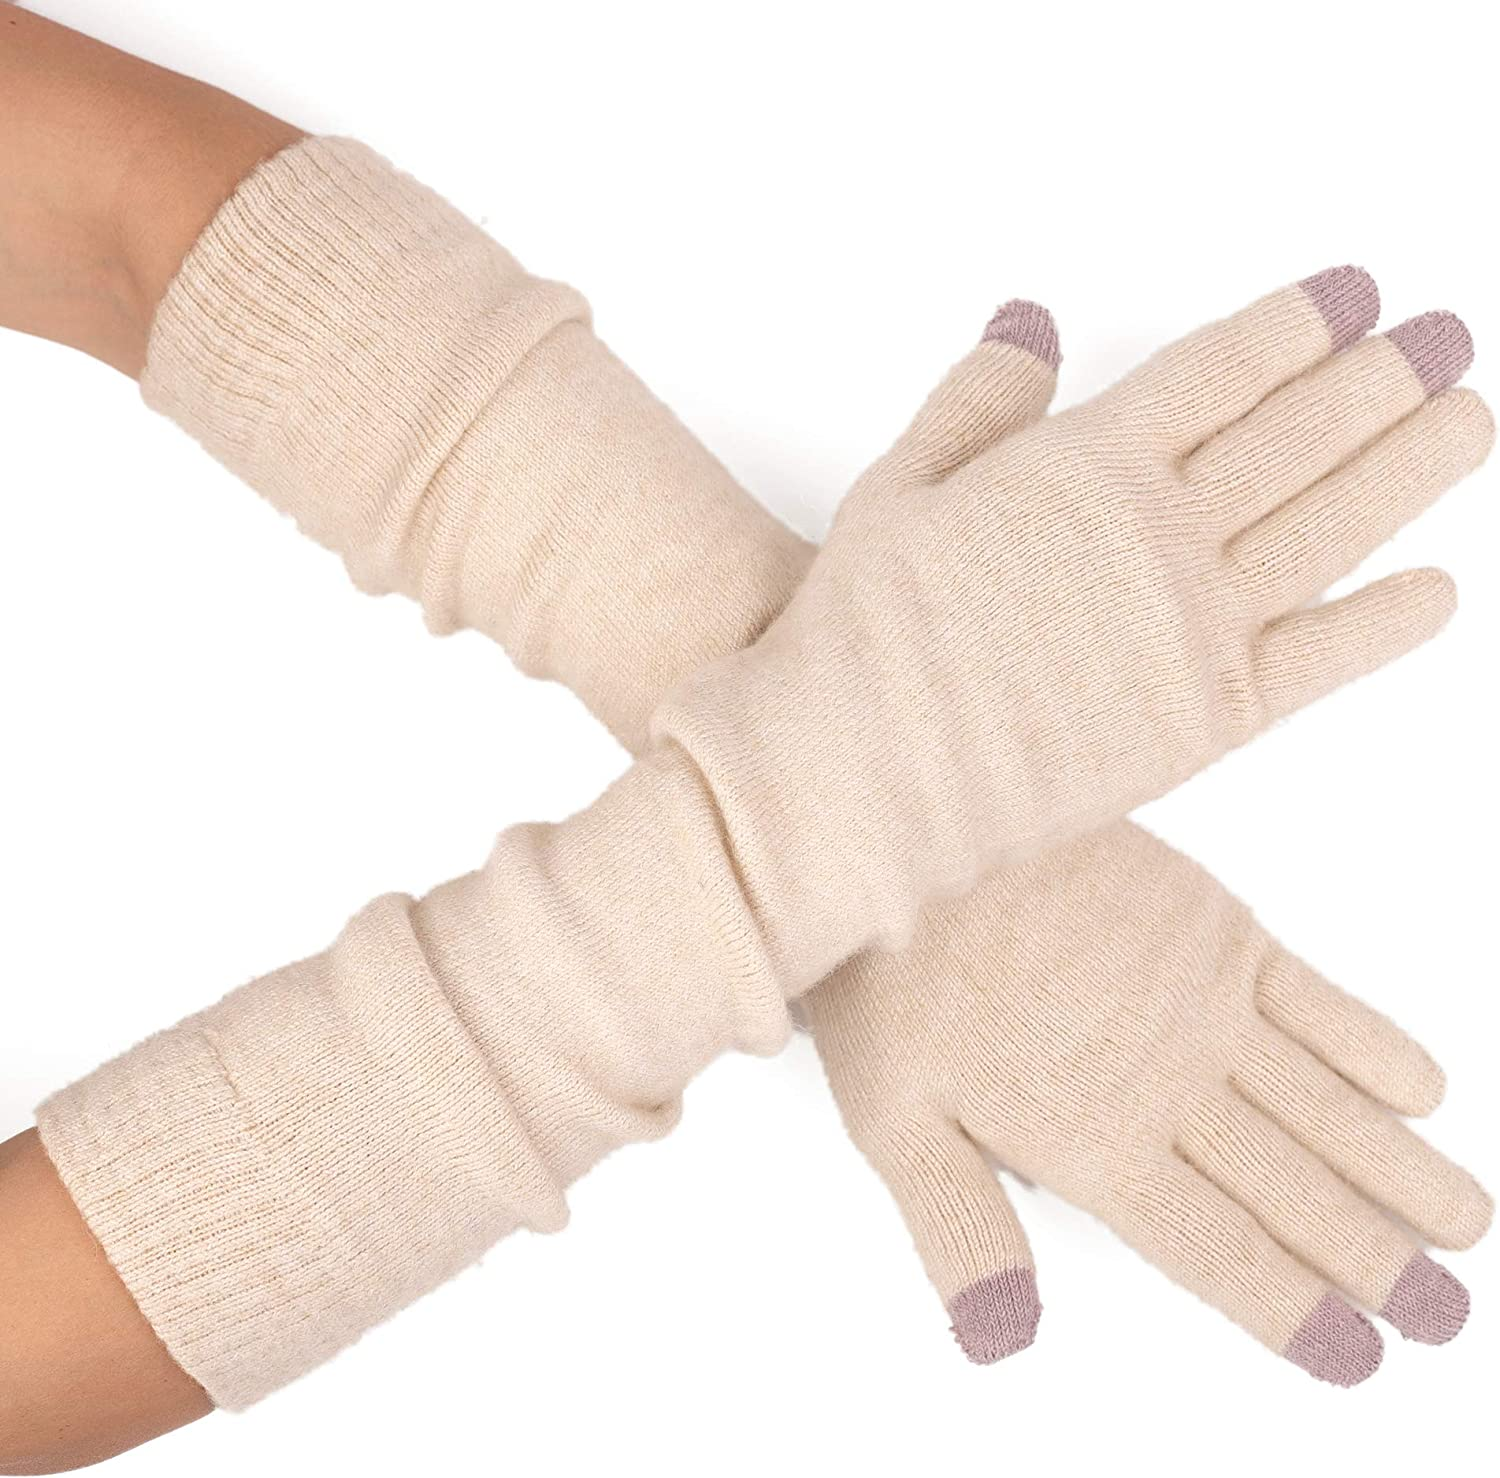 Flammi Womens Touch Screen Long Gloves Cashmere Blend Knit Arm Warmers Gloves with Fingers